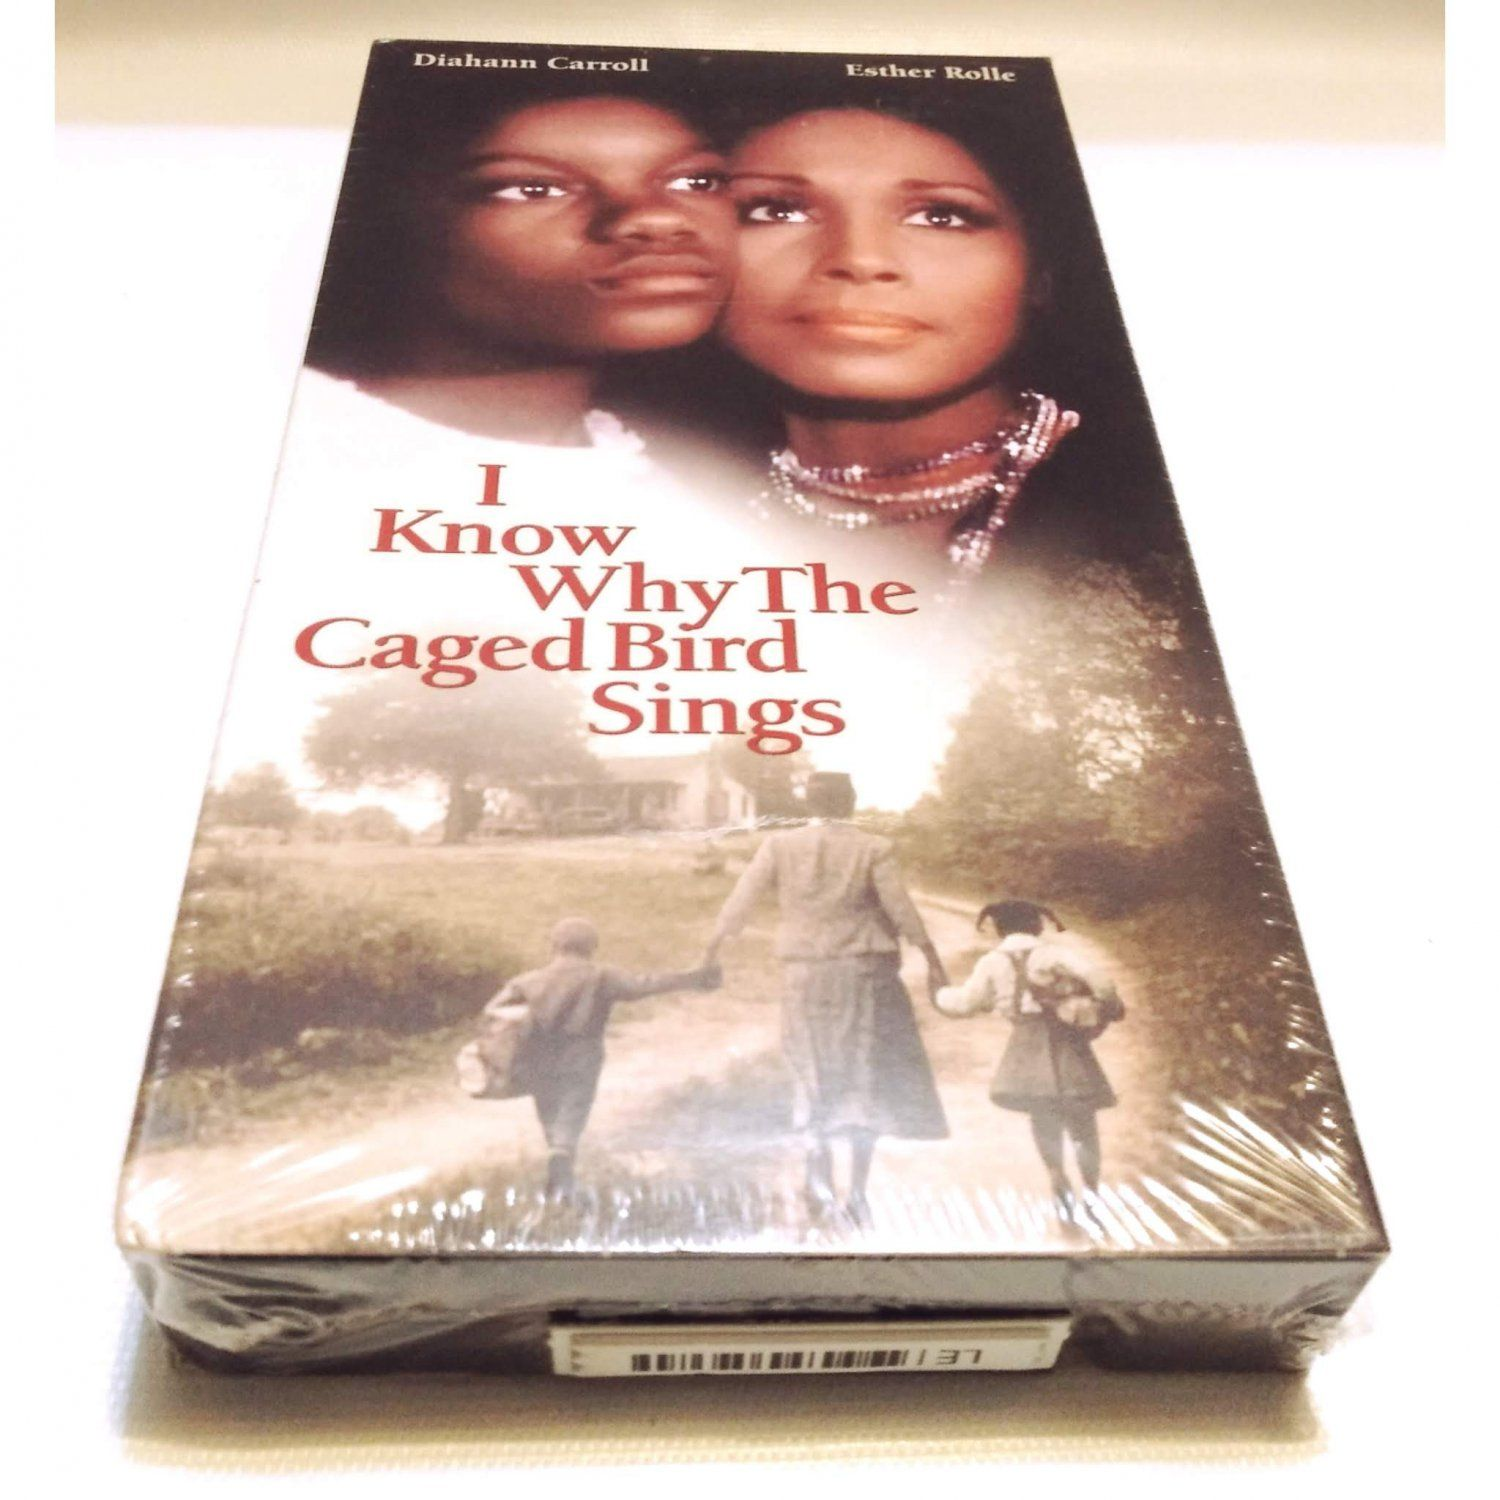 I Know Why The Caged Bird Sings Vhs 1998 Maya Angelou New Sealed Oop Out Of Print The Caged Bird Sings Maya Angelou Singing